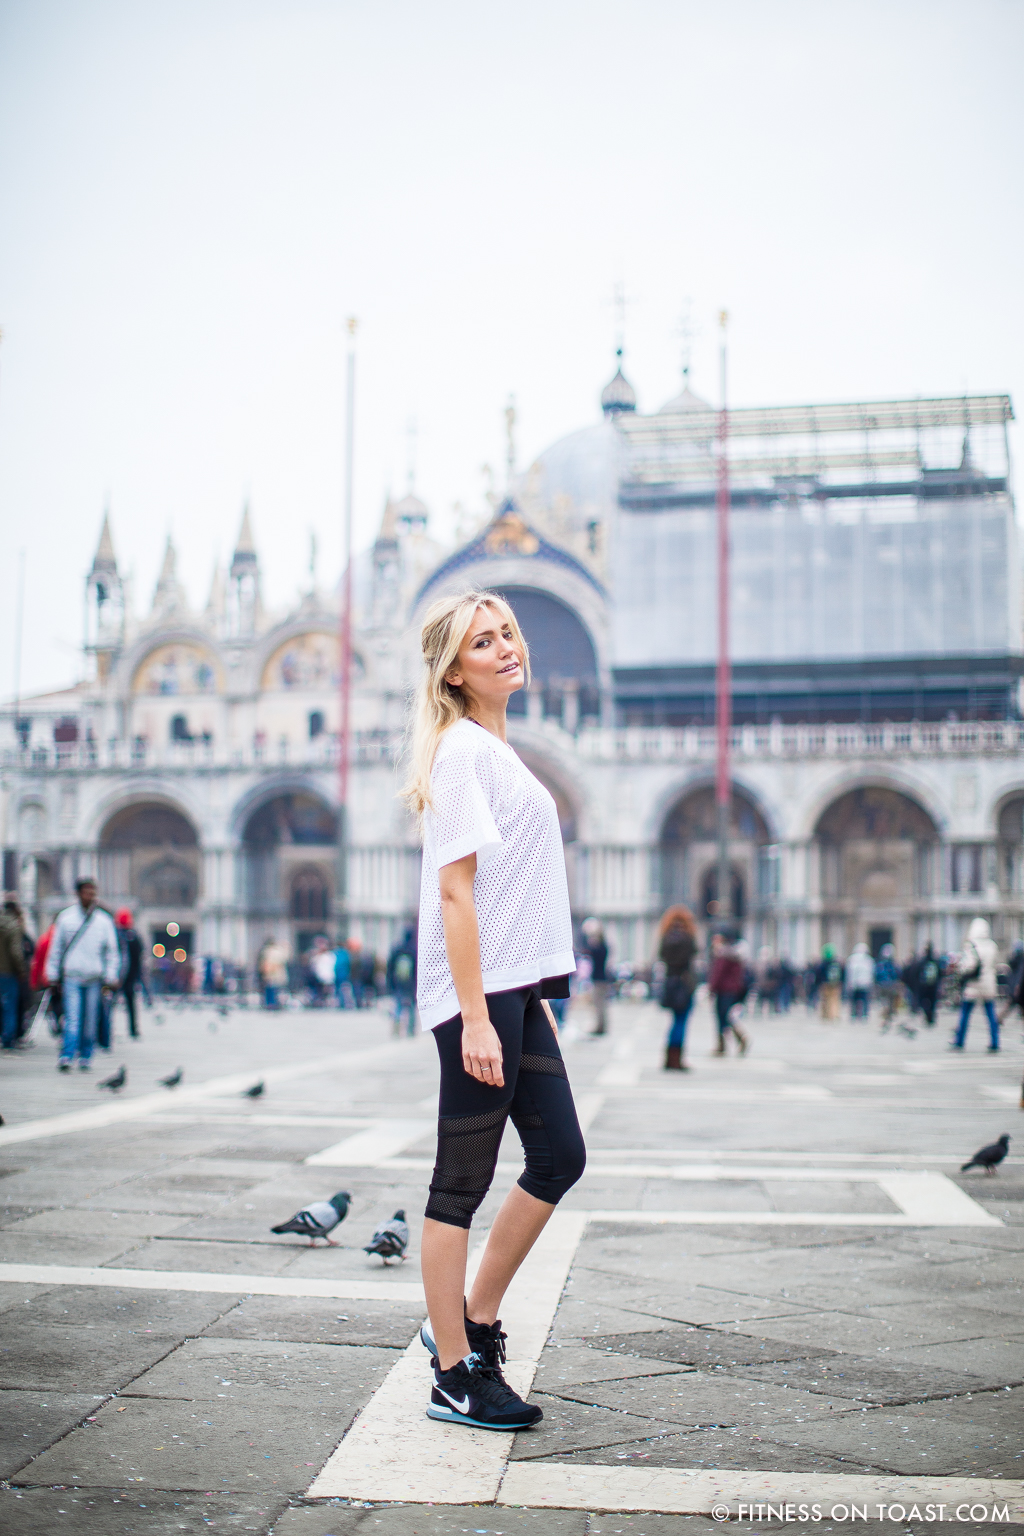 Fitness On Toast Faya Blog Girl Healthy Weekend Active Escape Health Venice Italy Urban Outfitters Workout Outfit Kit Clothes Stella_-9